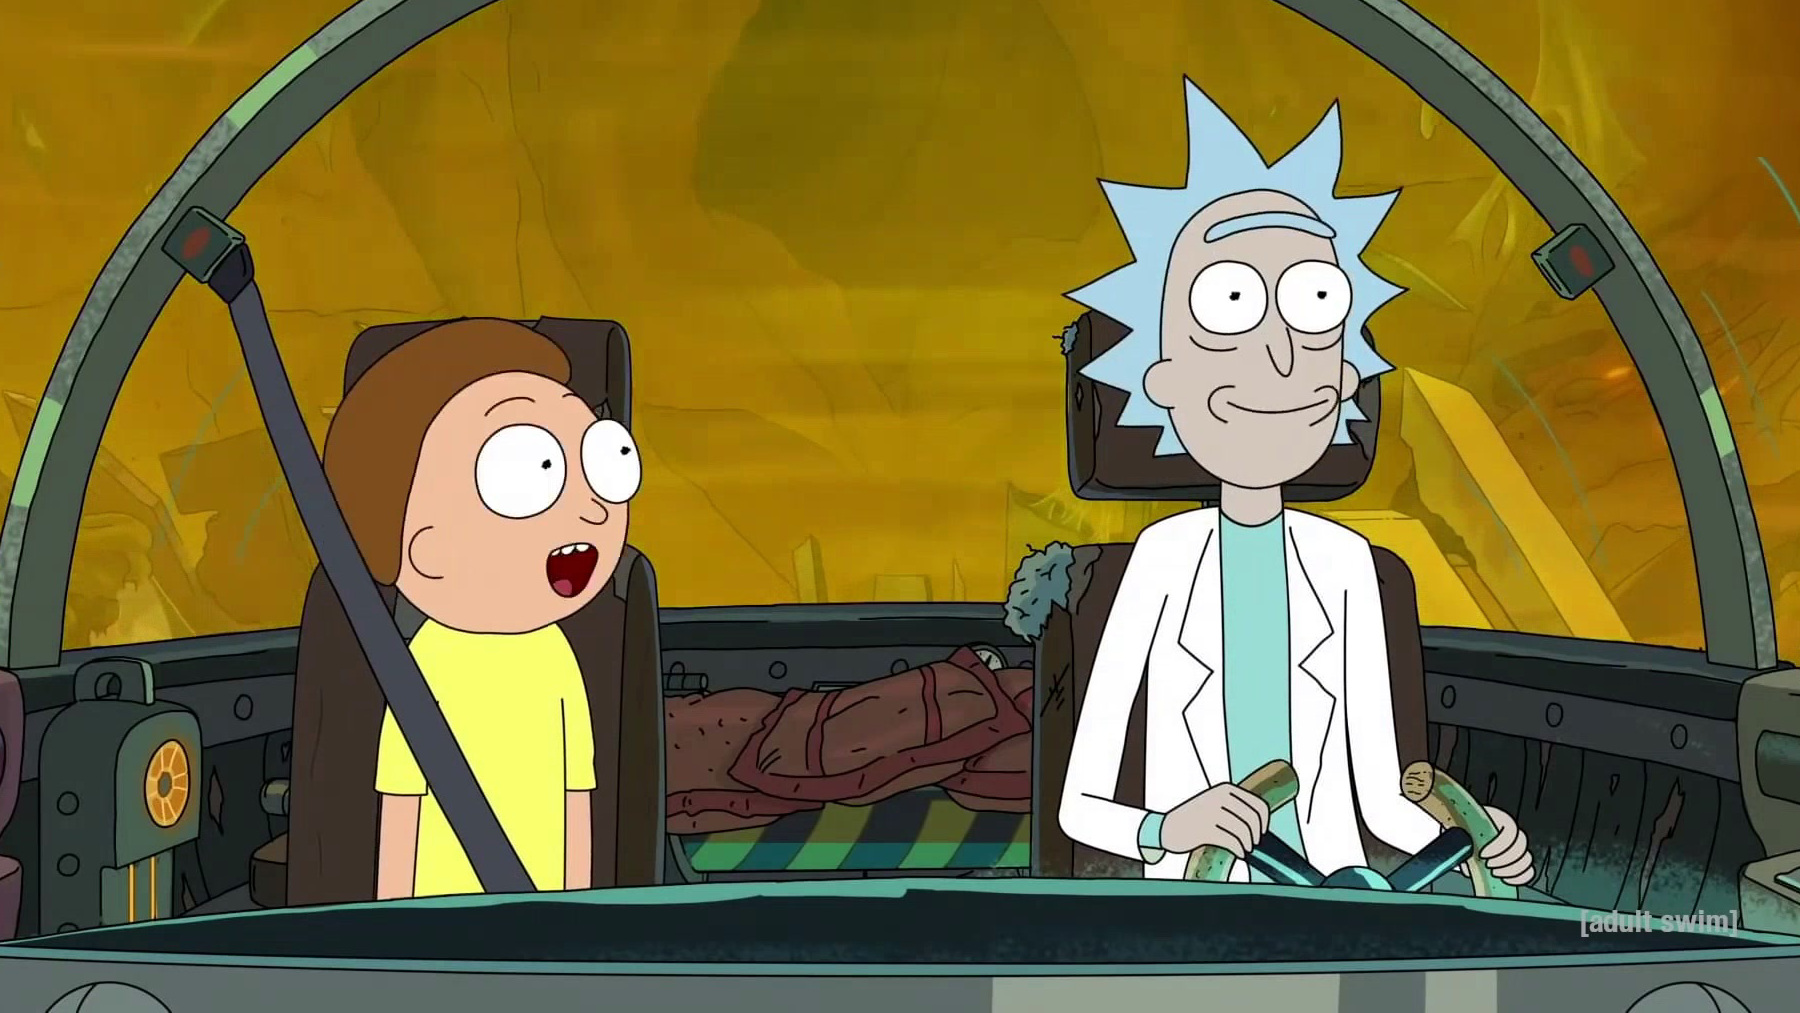 Rick and Morty: Just Like Star Wars